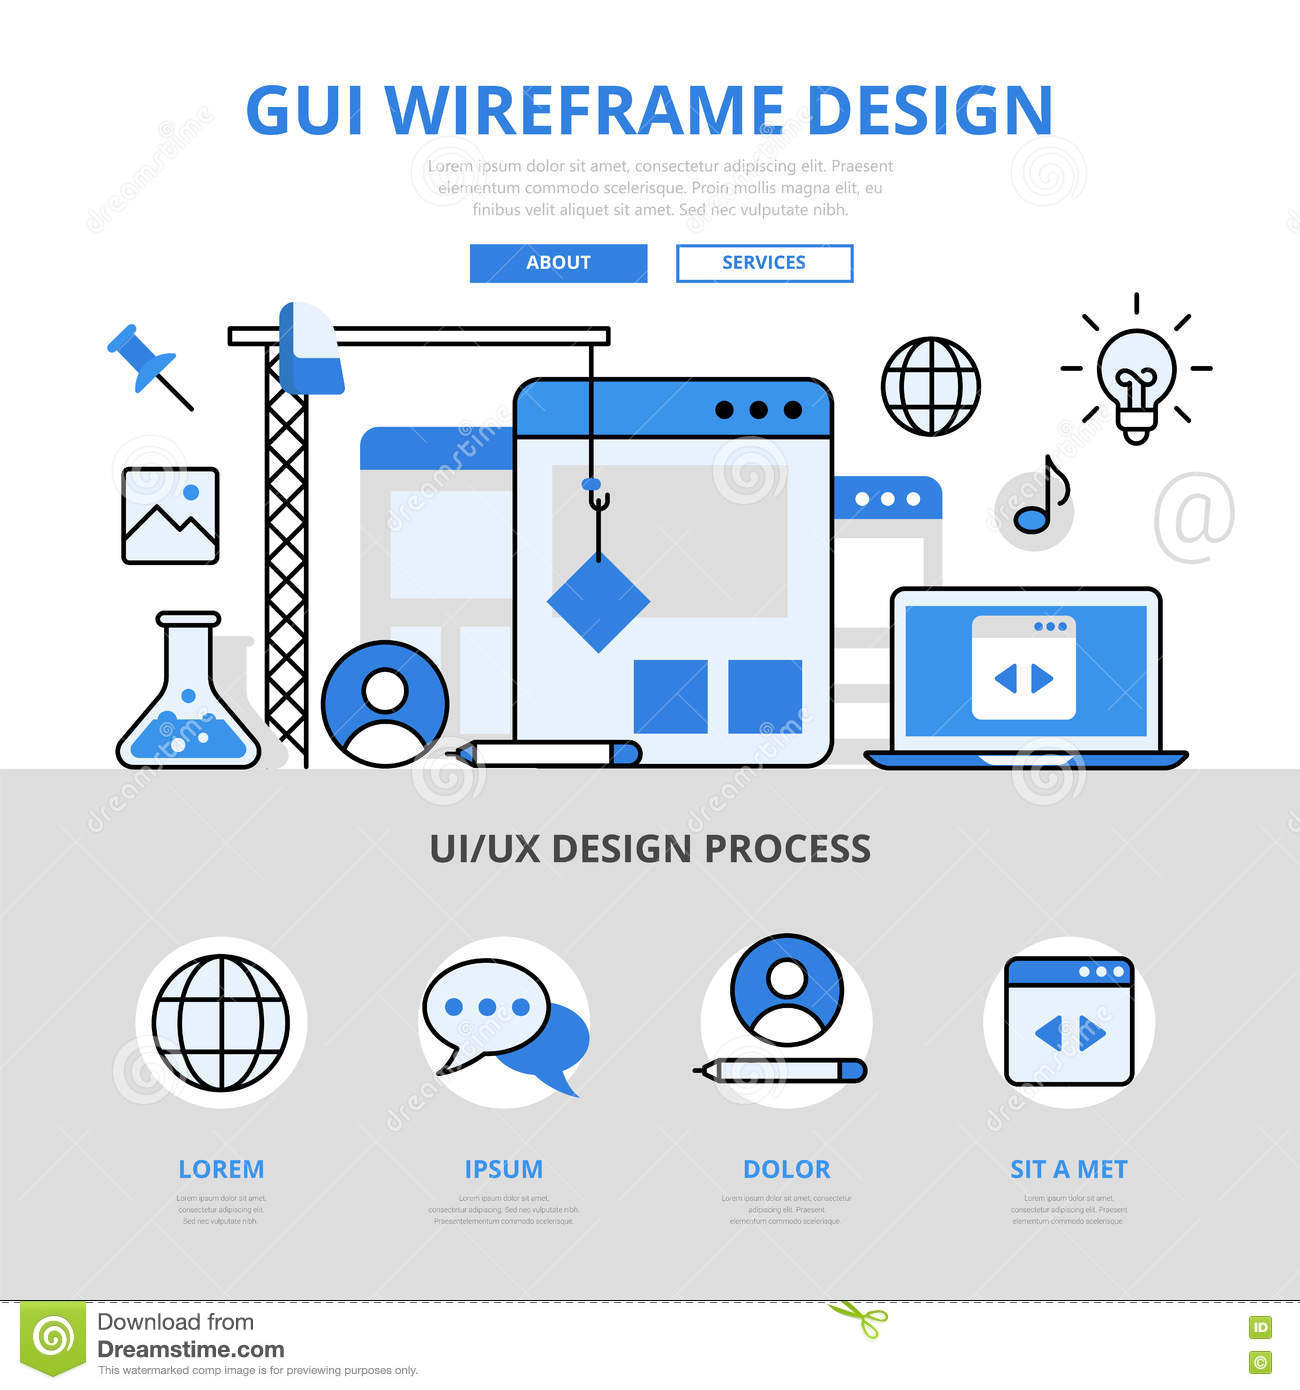 Hero Image Web Design Wireframe